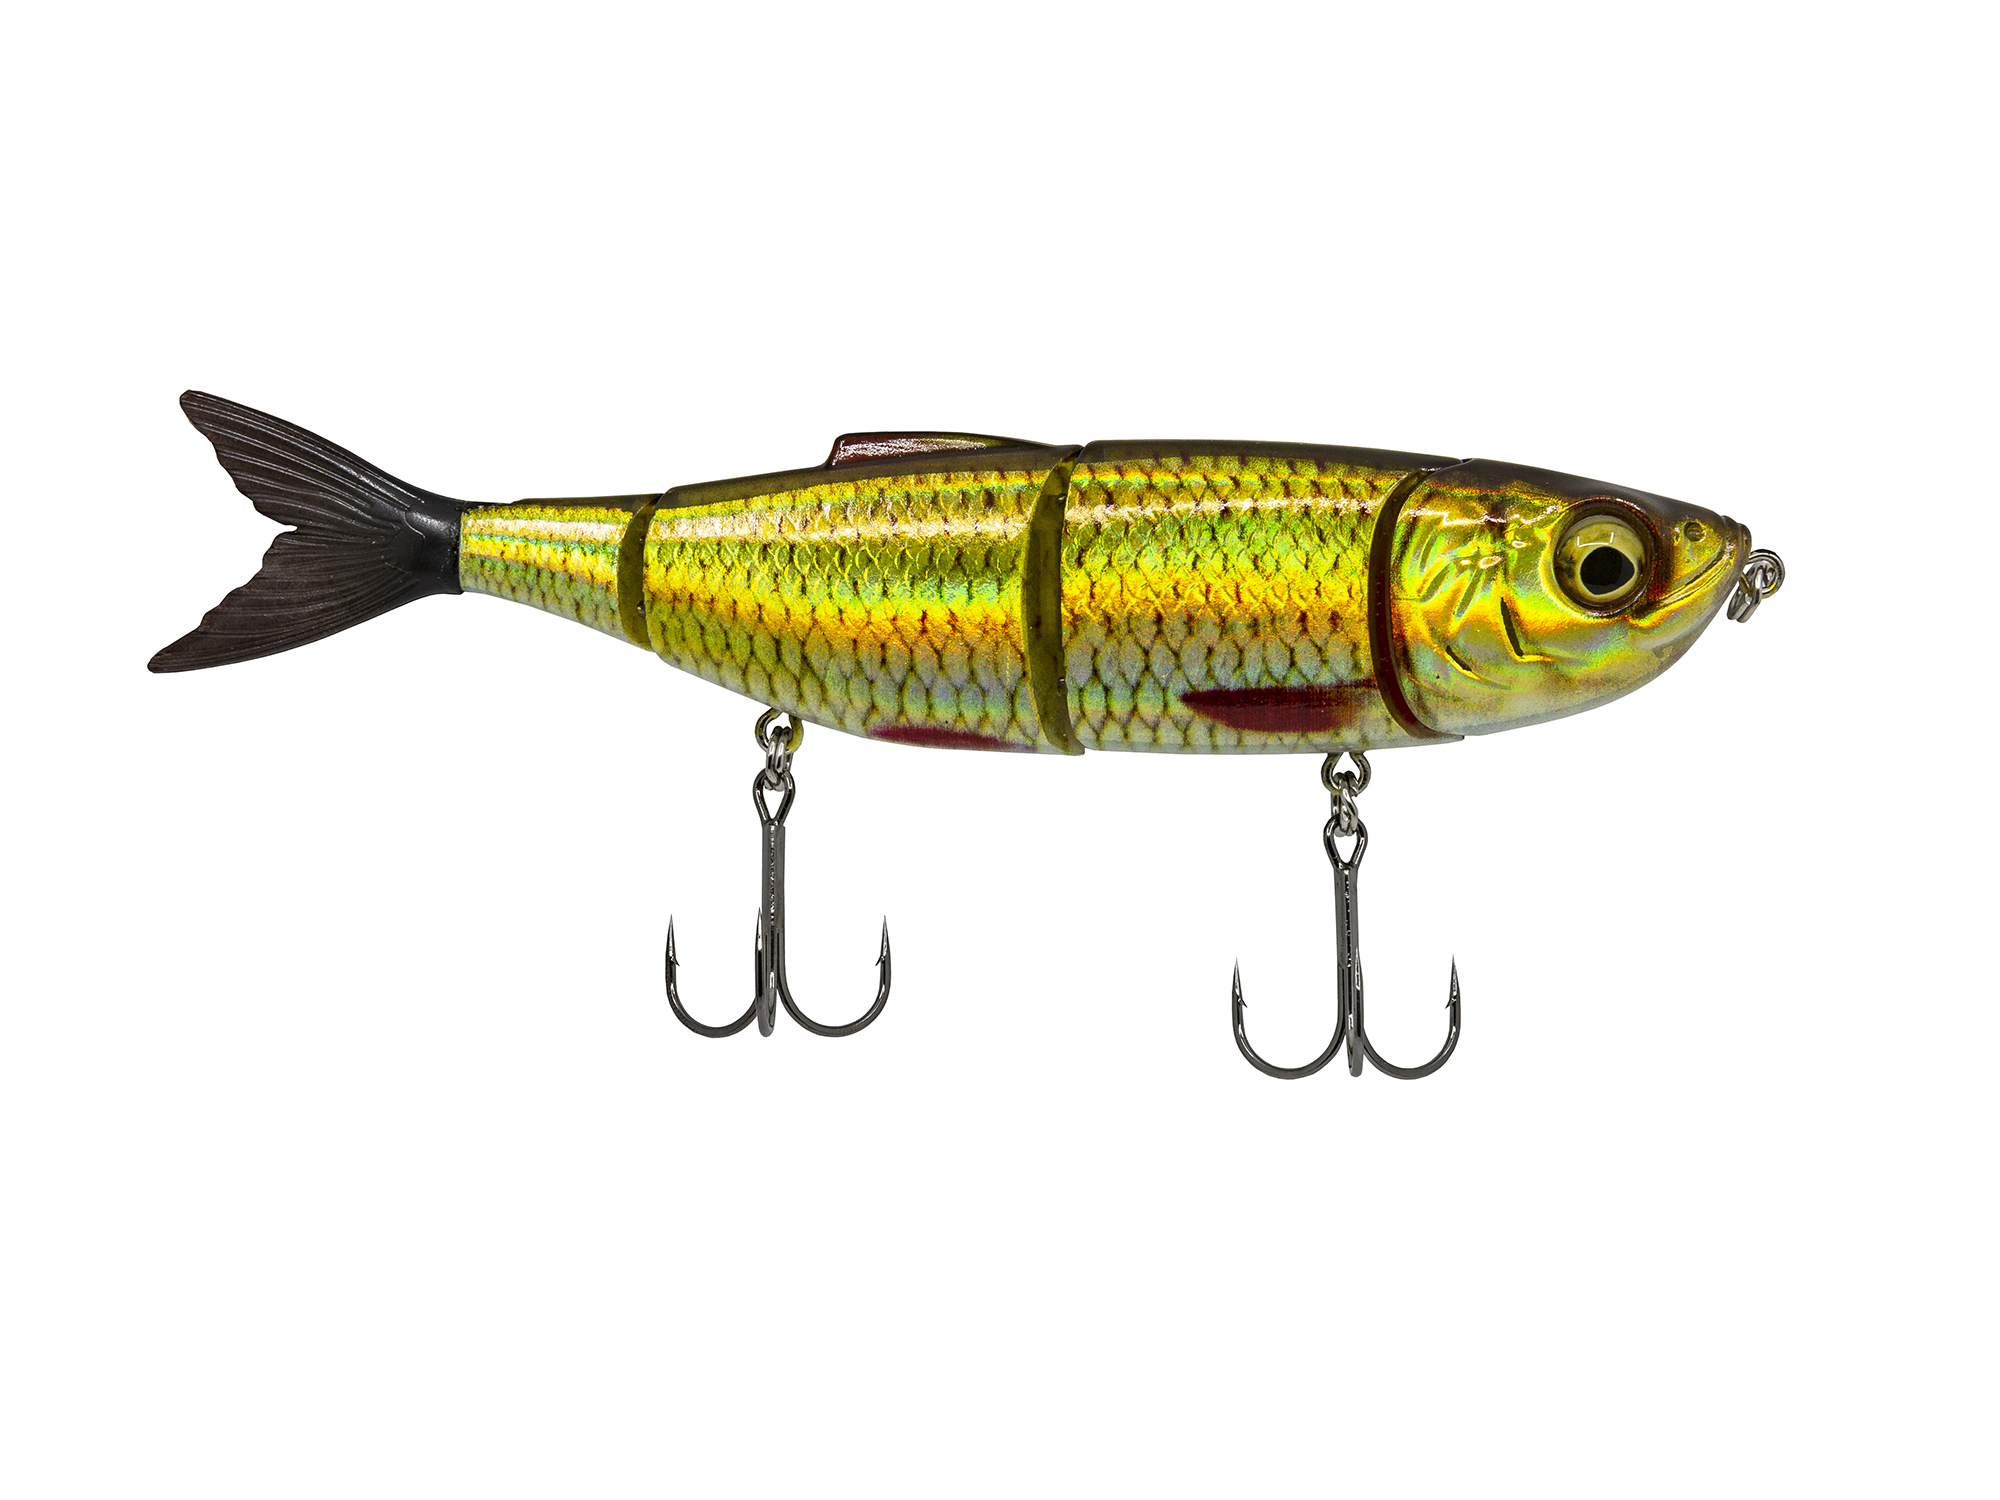 Download Savage Gear 4play Pro Karl S Bait Tackle